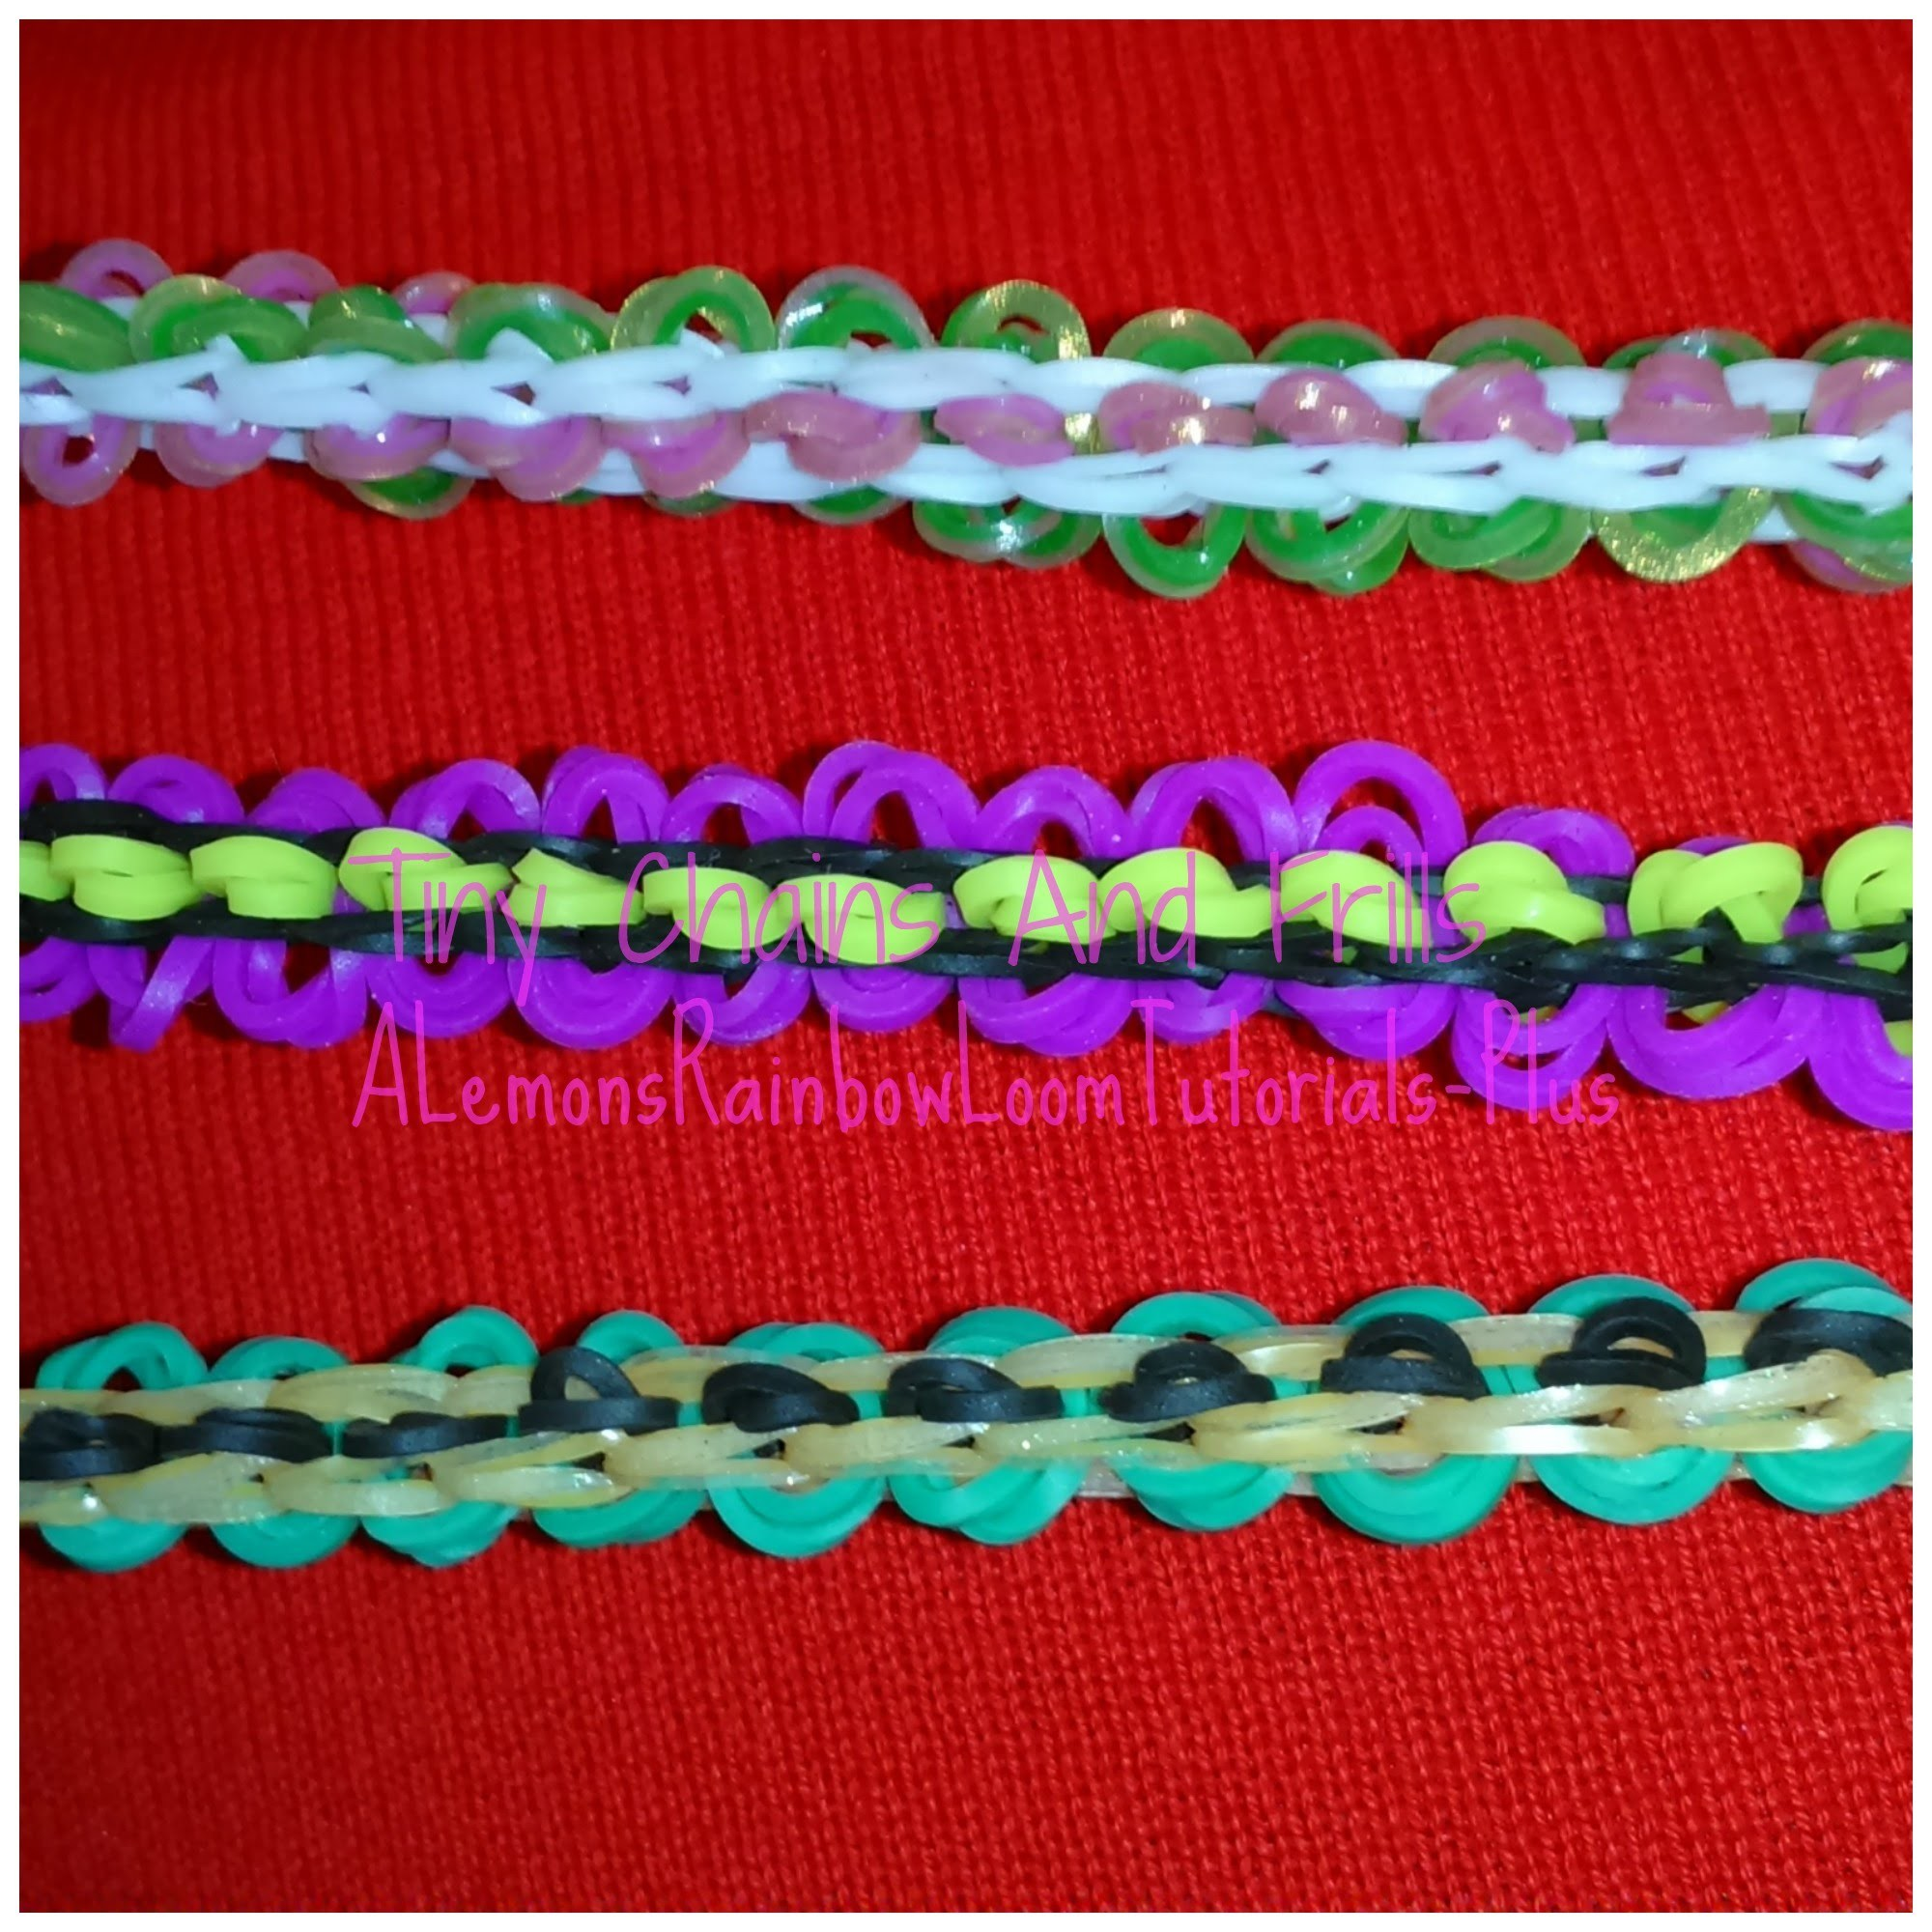 Rainbow Loom - Tiny Chains And Frills Bracelet | How to